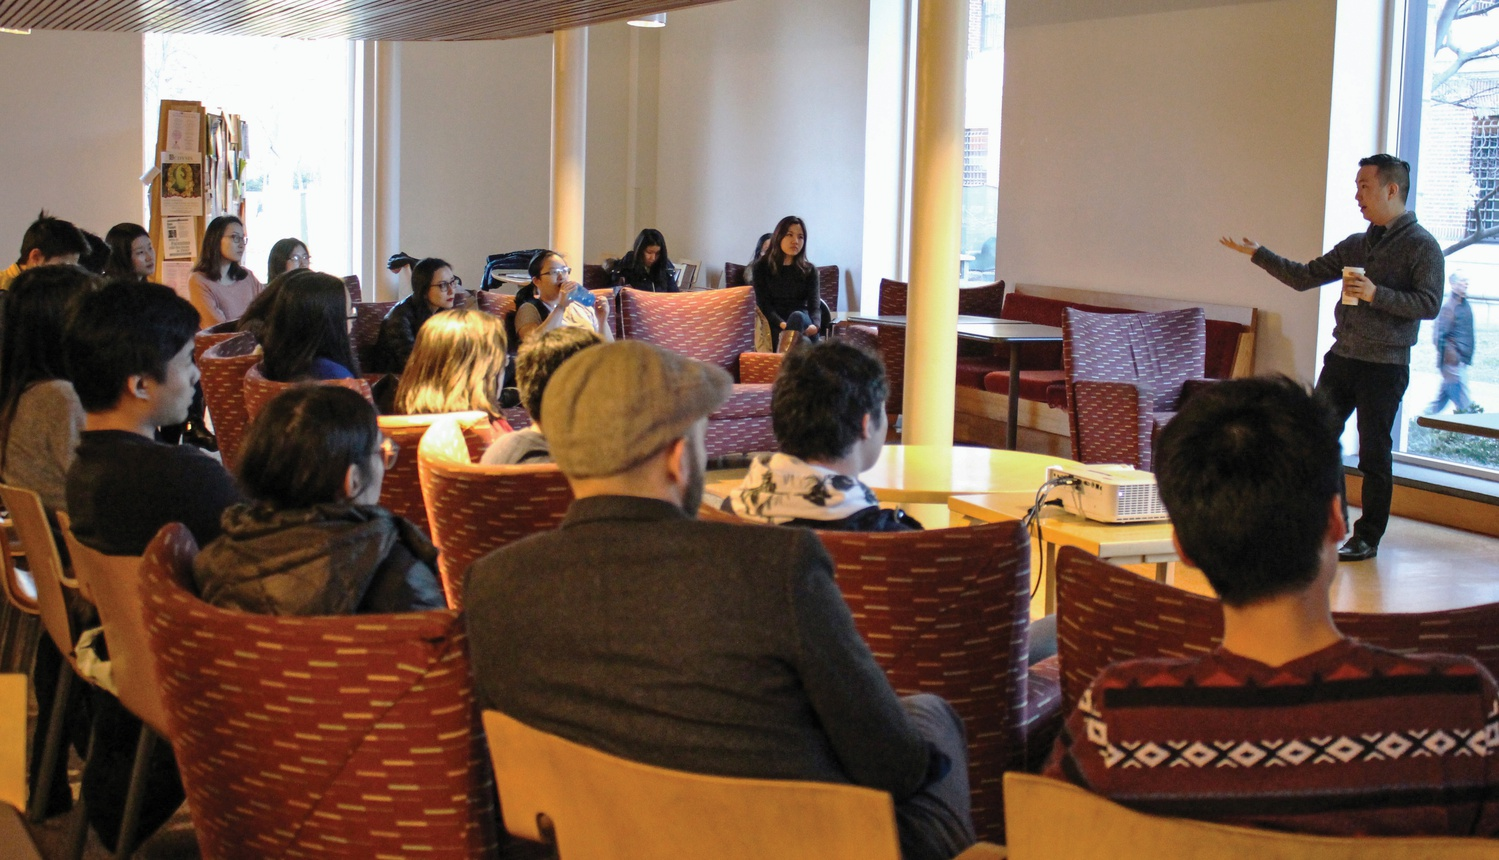 Professor Terry K. Park, a Visiting Lecturer of Asian American Studies at Wellesley College, talks about the importance of Asian and Pacific American Studies and its relevance to current political and social concerns on Friday afternoon in Ticknor Lounge.